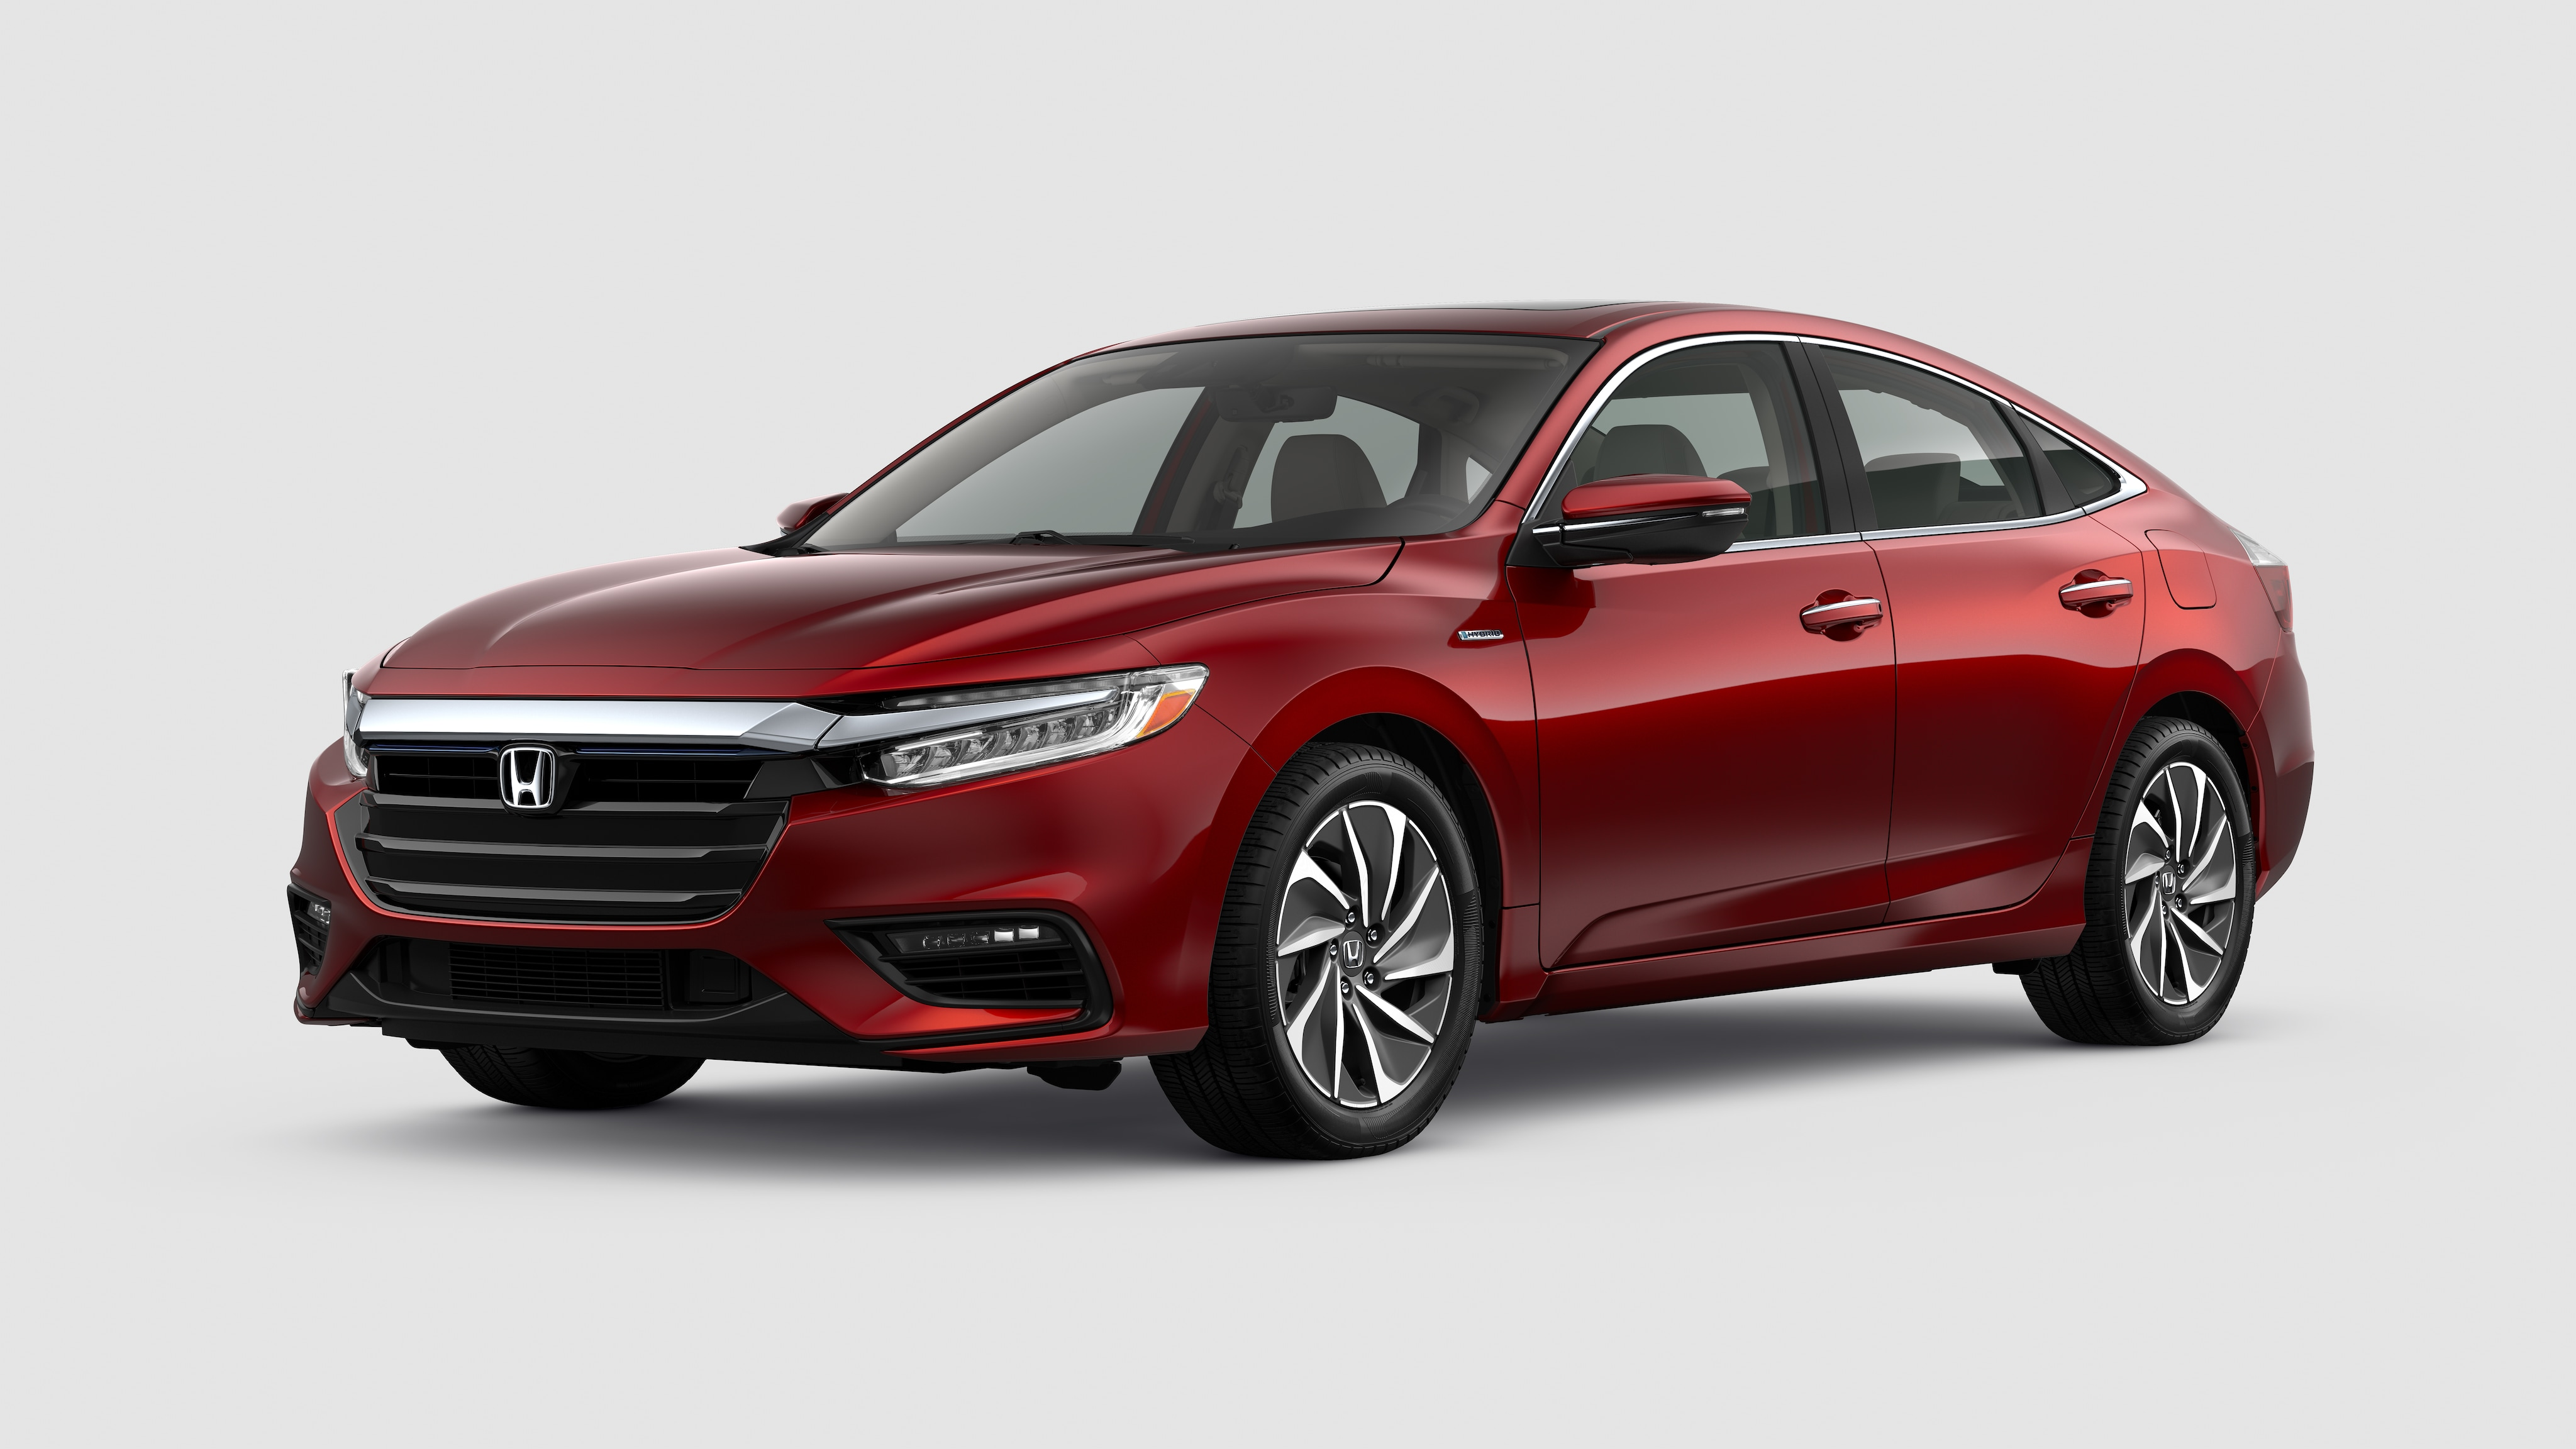 The 2019 Honda Insight Carries A Familiar Name Into Hall Honda Elizabeth  City, But Itu0027s A Much Different Car Than The Last One To Wear The Badge.